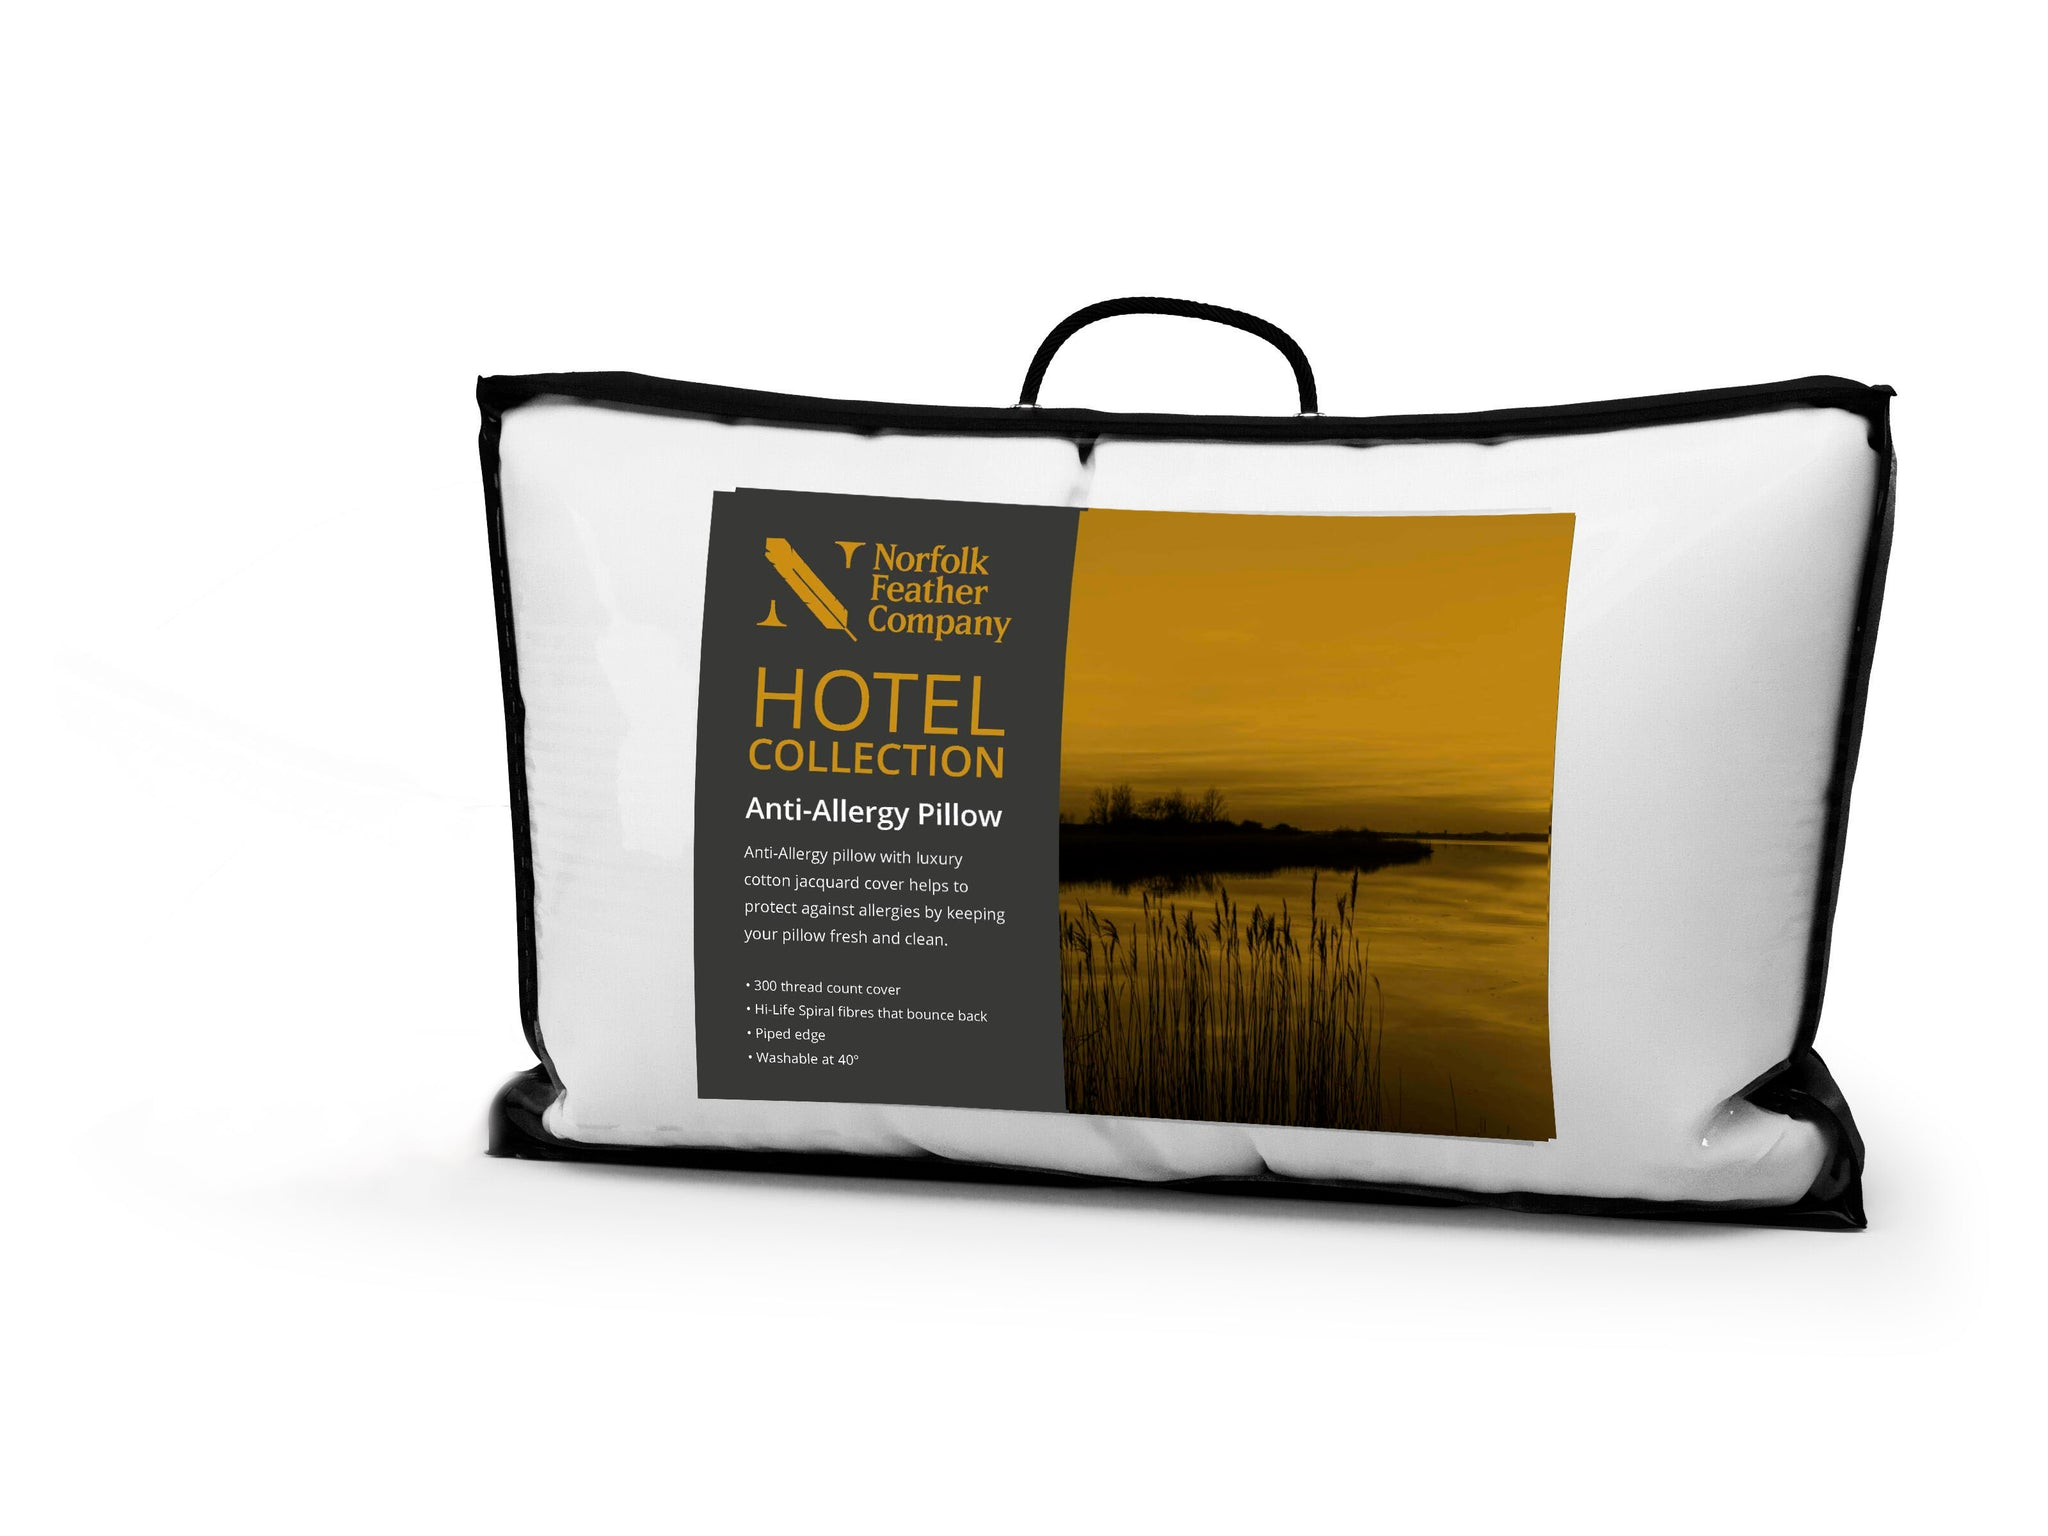 Norfolk Hotel Collection | Feels Like Down Anti-Allergy Pillow